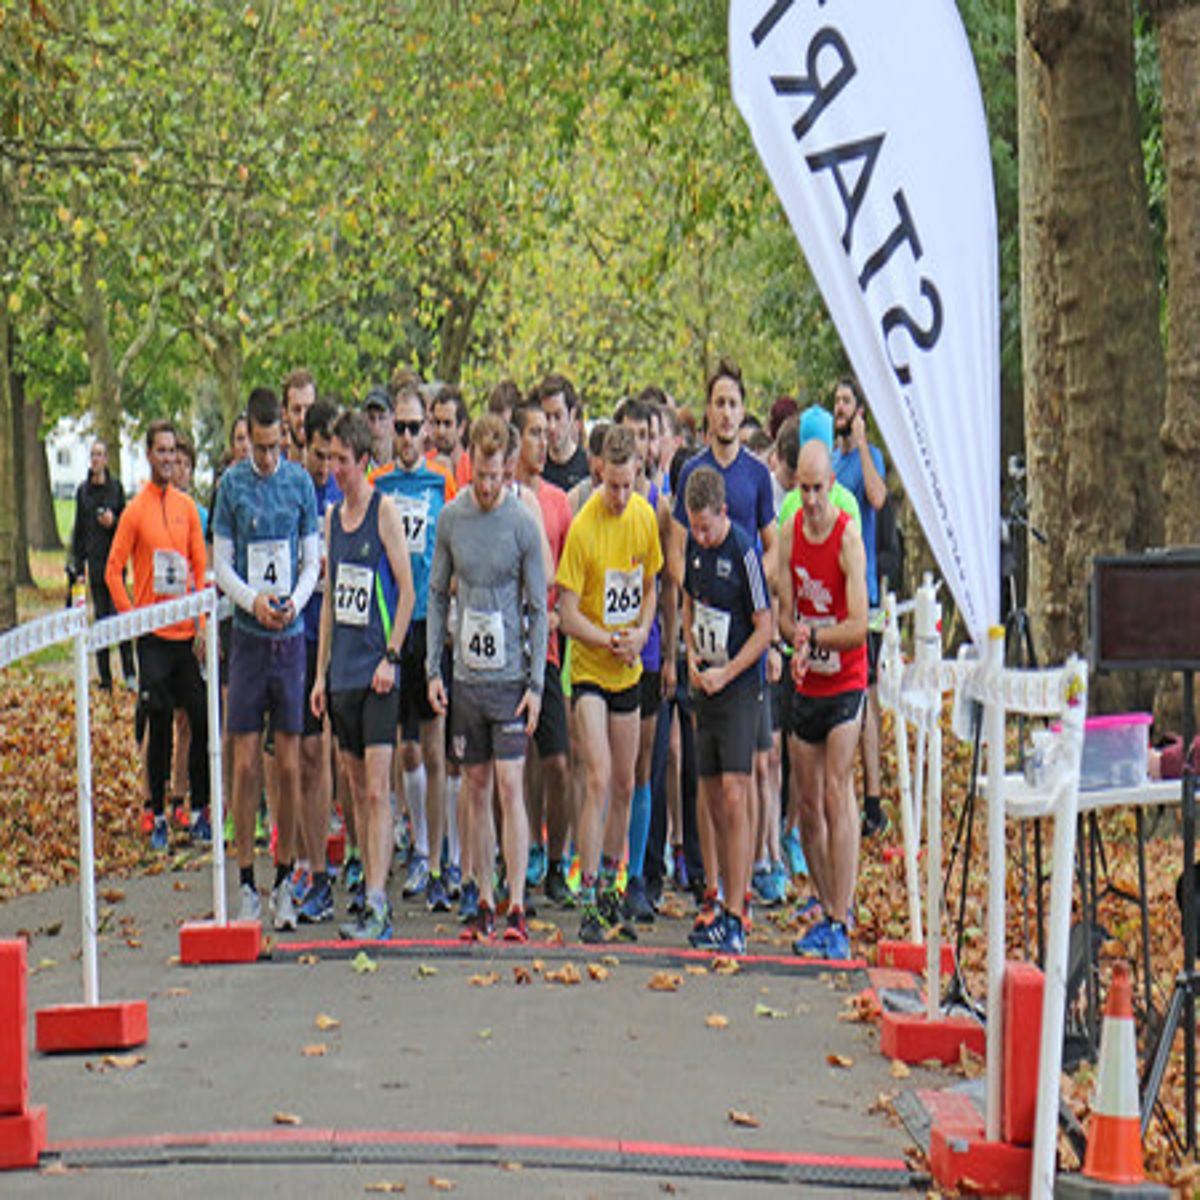 Victoria Park 10K Winter Series - Race 2 - February